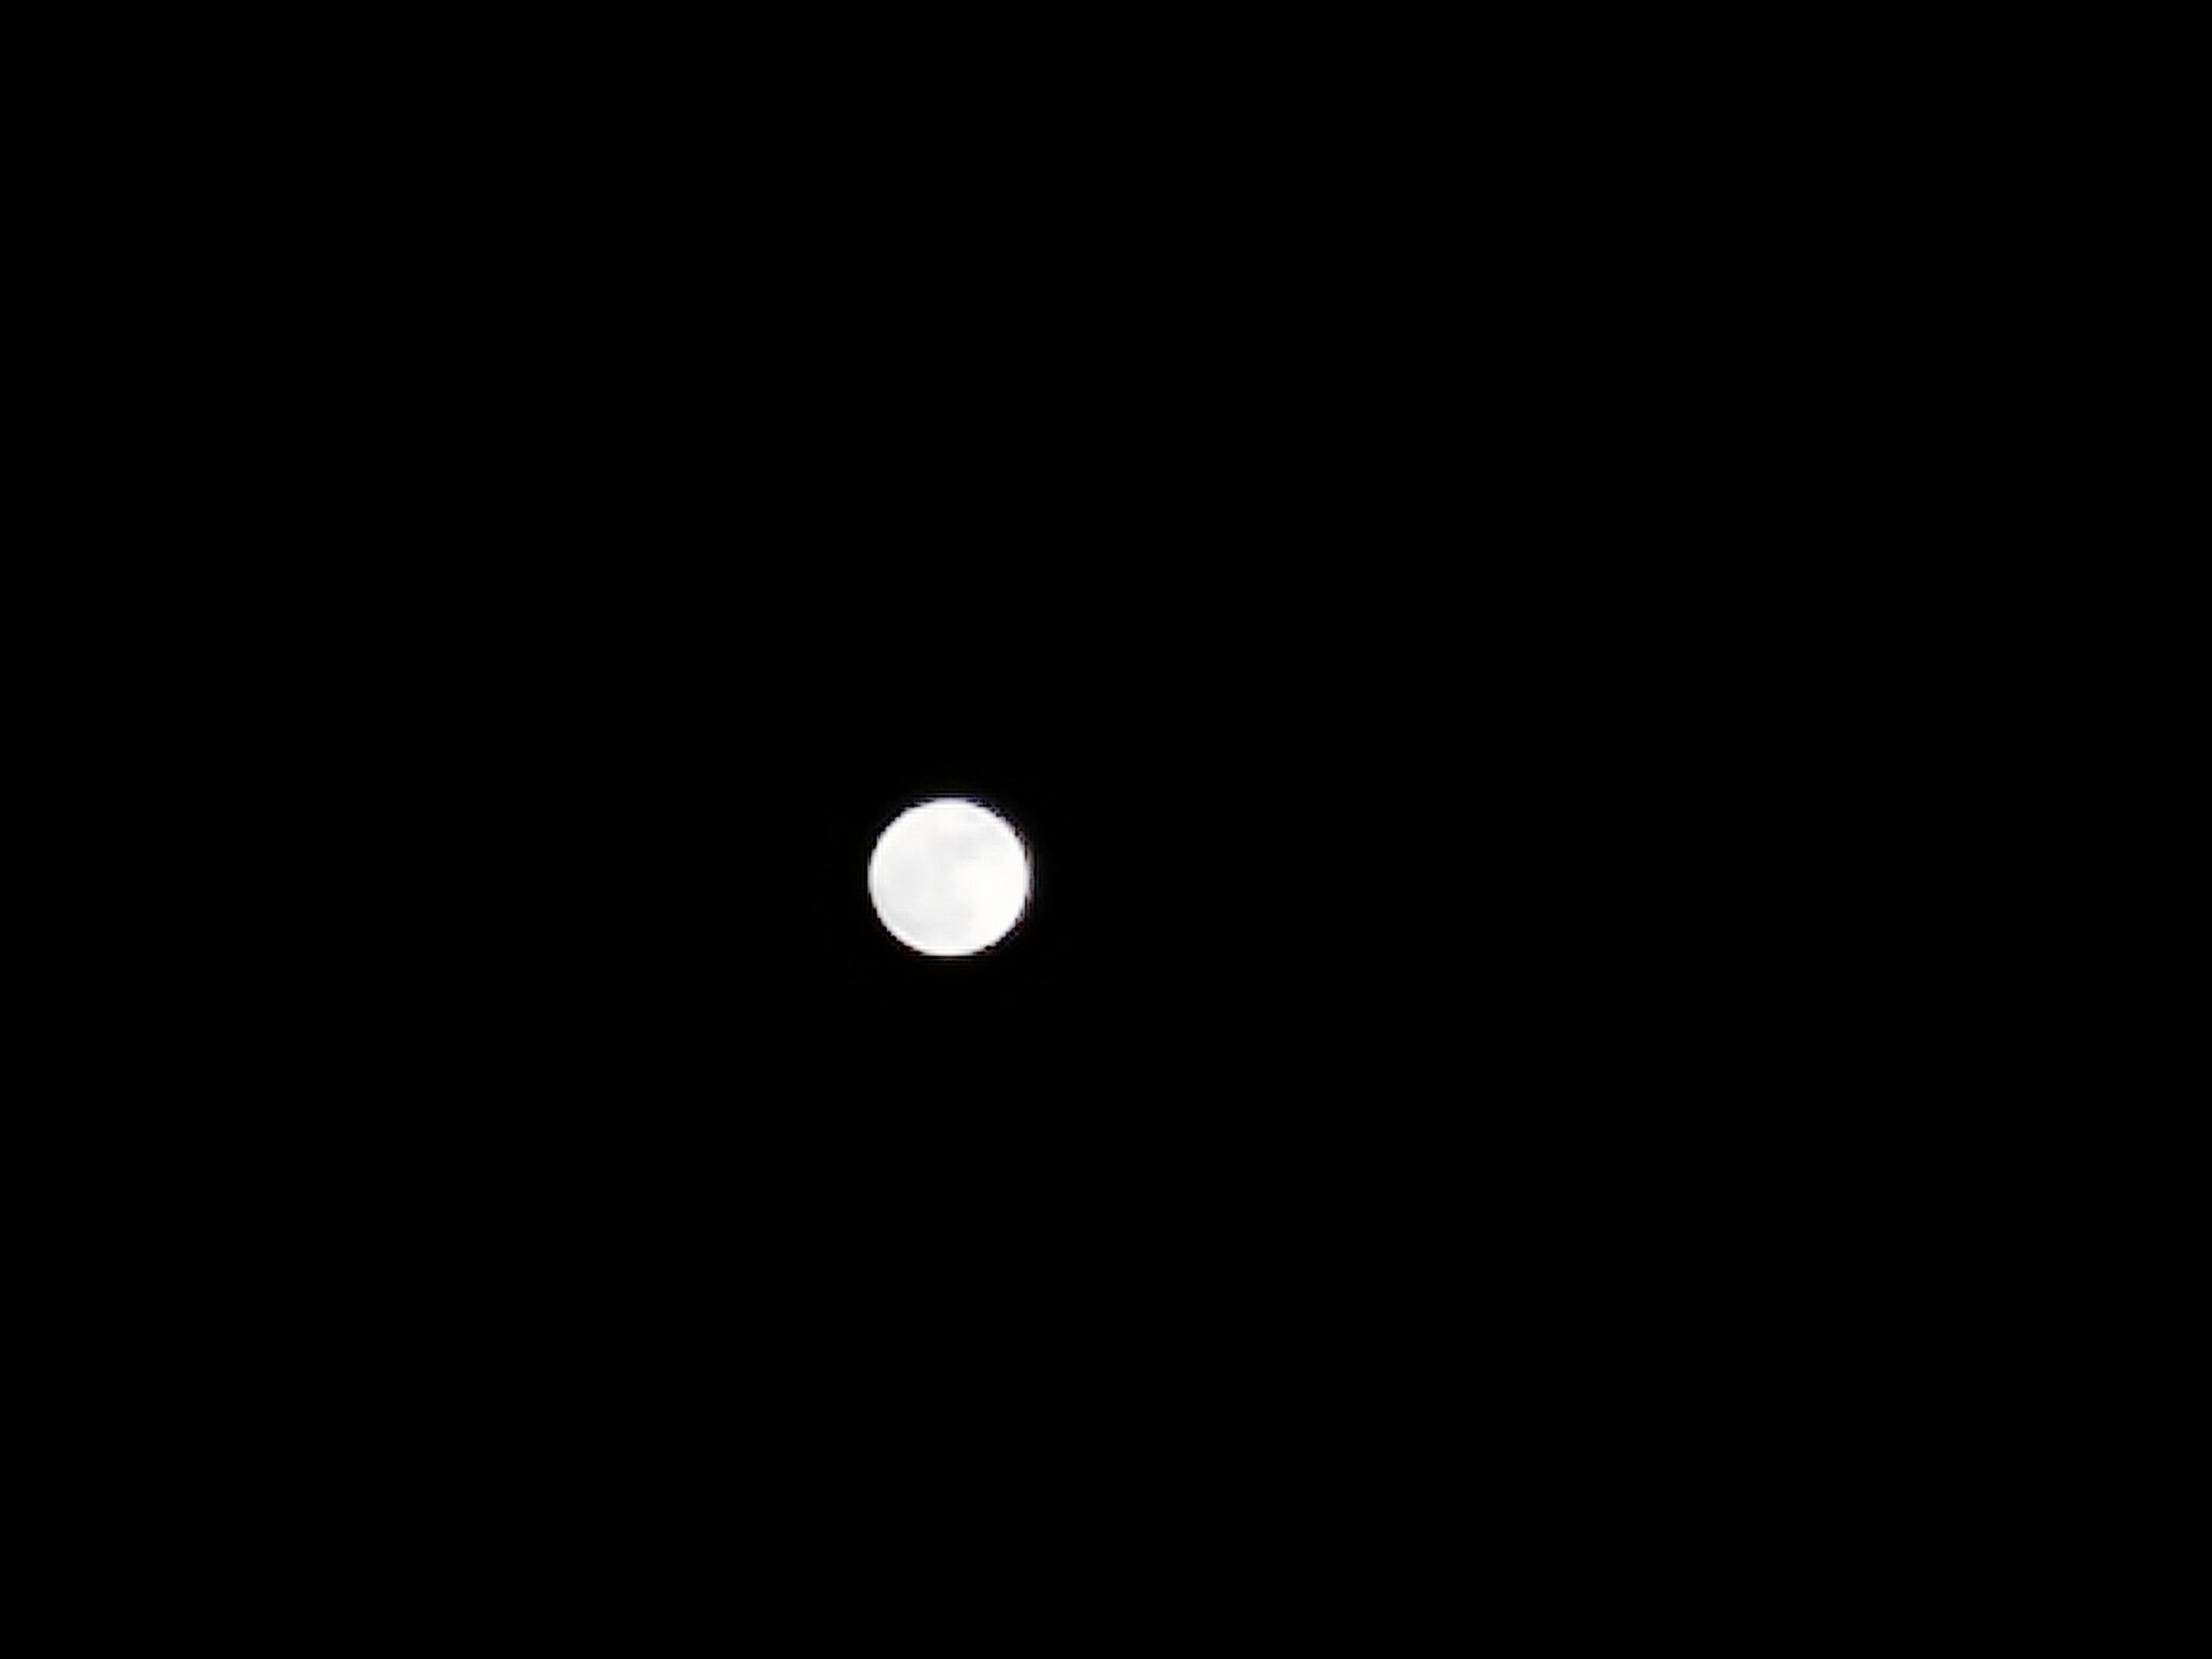 moon, copy space, astronomy, night, nature, dark, beauty in nature, low angle view, tranquil scene, space, scenics, sky, no people, outdoors, planetary moon, black background, moon surface, half moon, solar eclipse